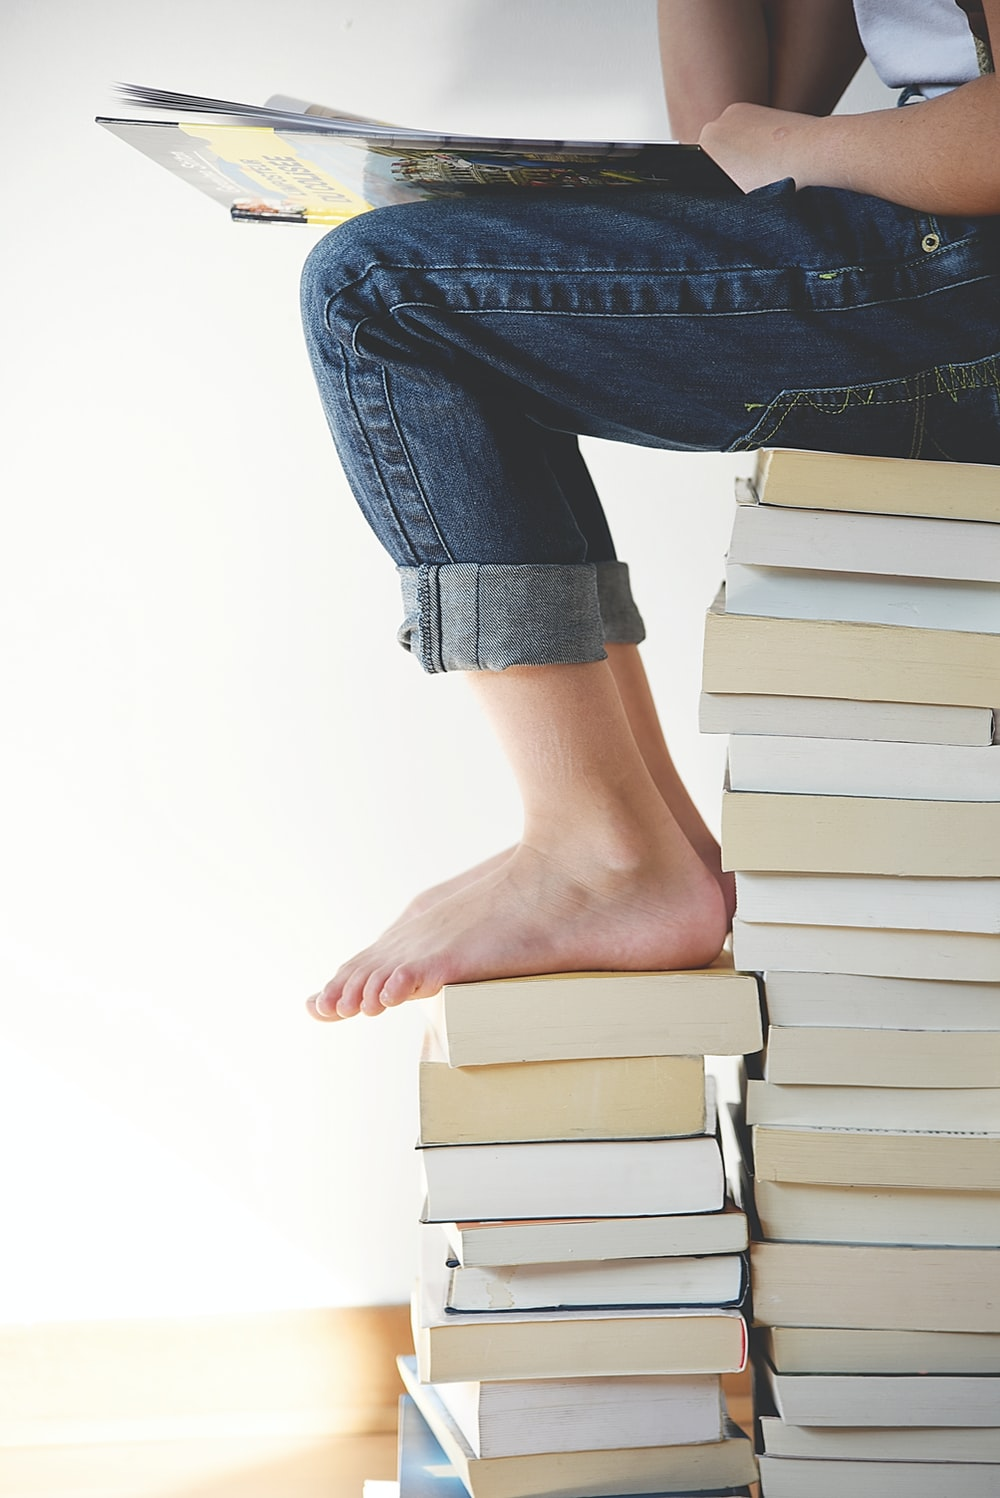 person sitting on stack of books while reading